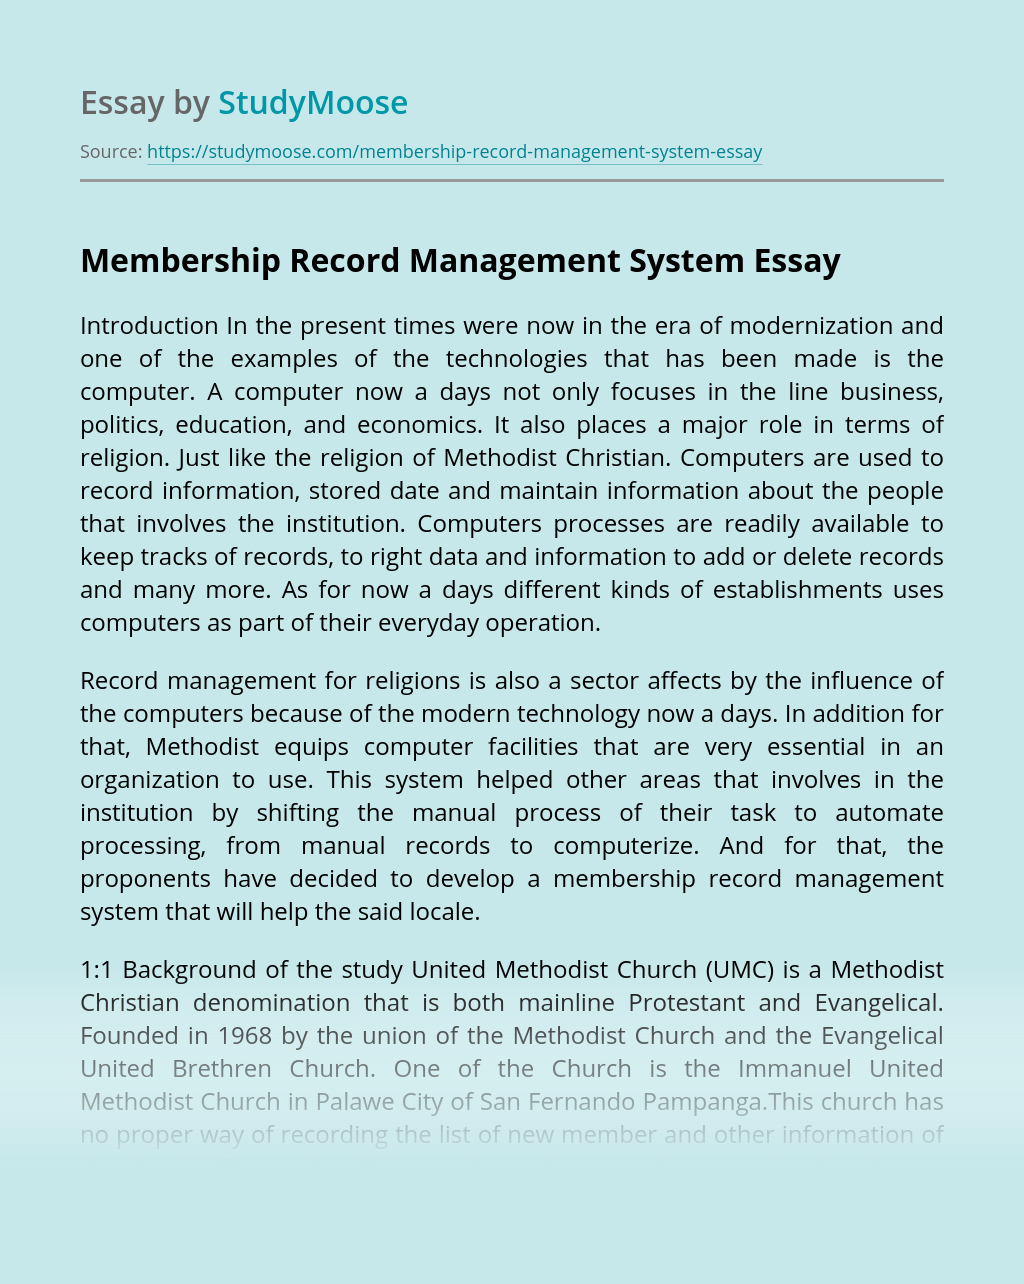 Membership Record Management System